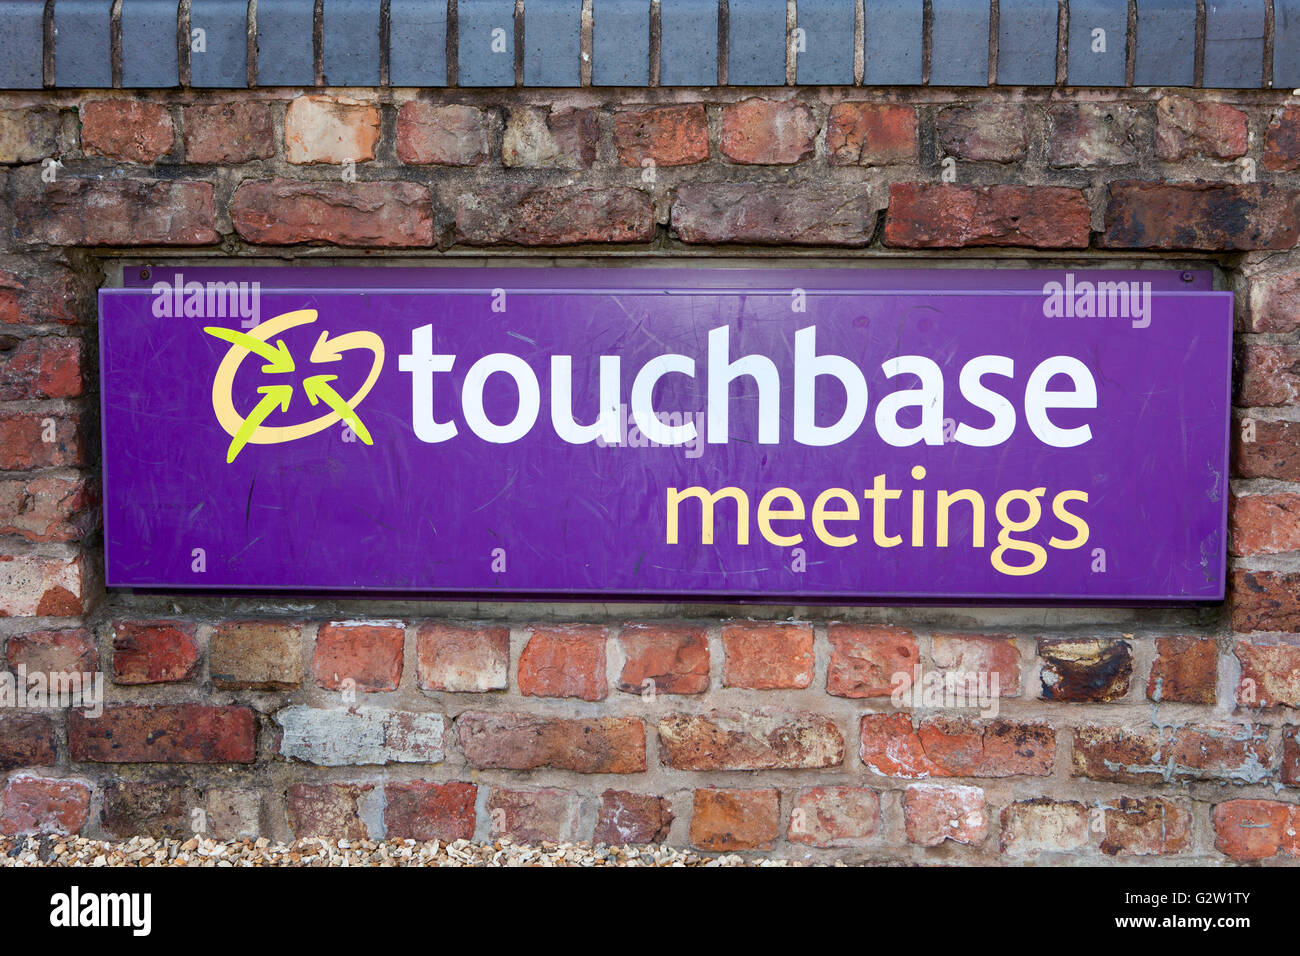 touch base meetings